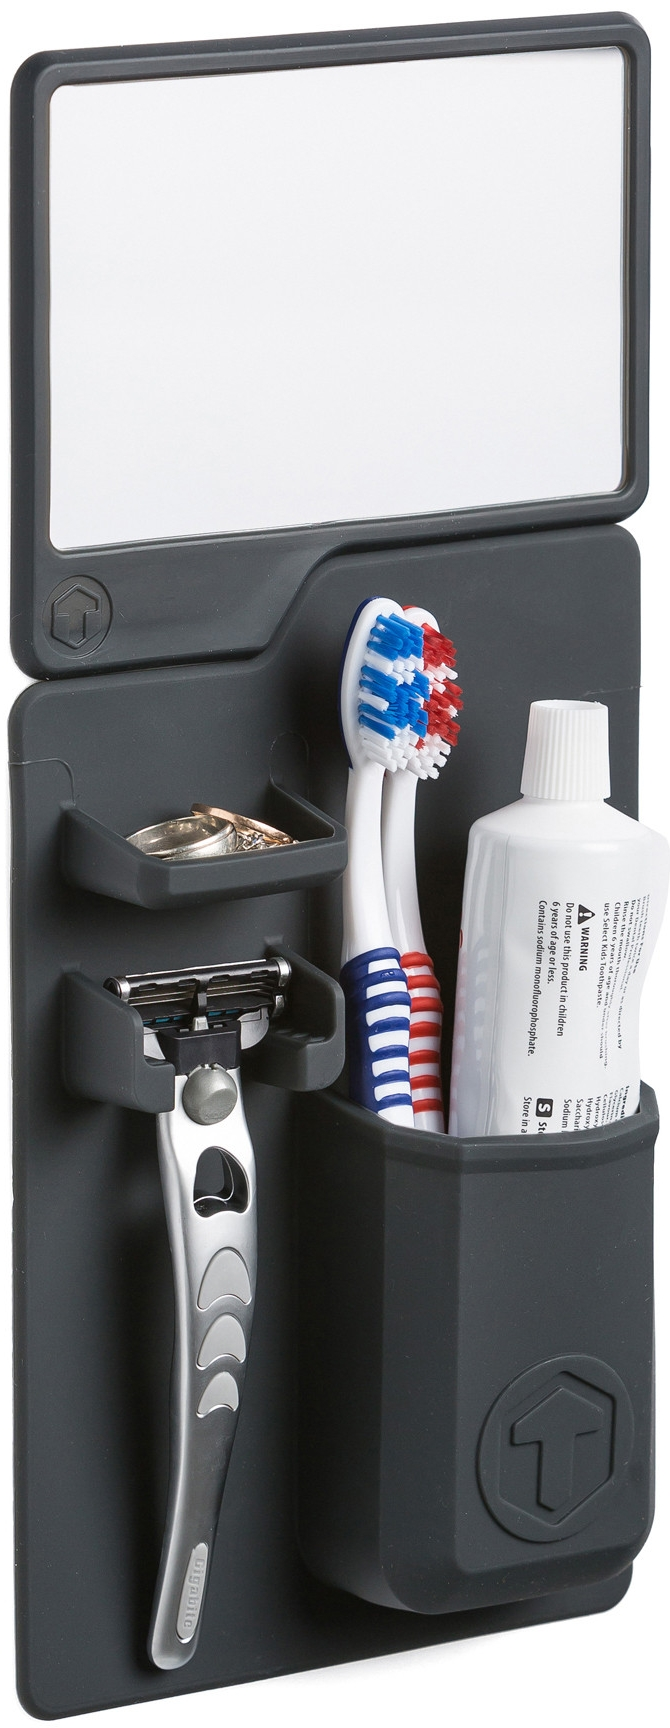 Tooletries Mighty Toothbrush Holder, $17.99